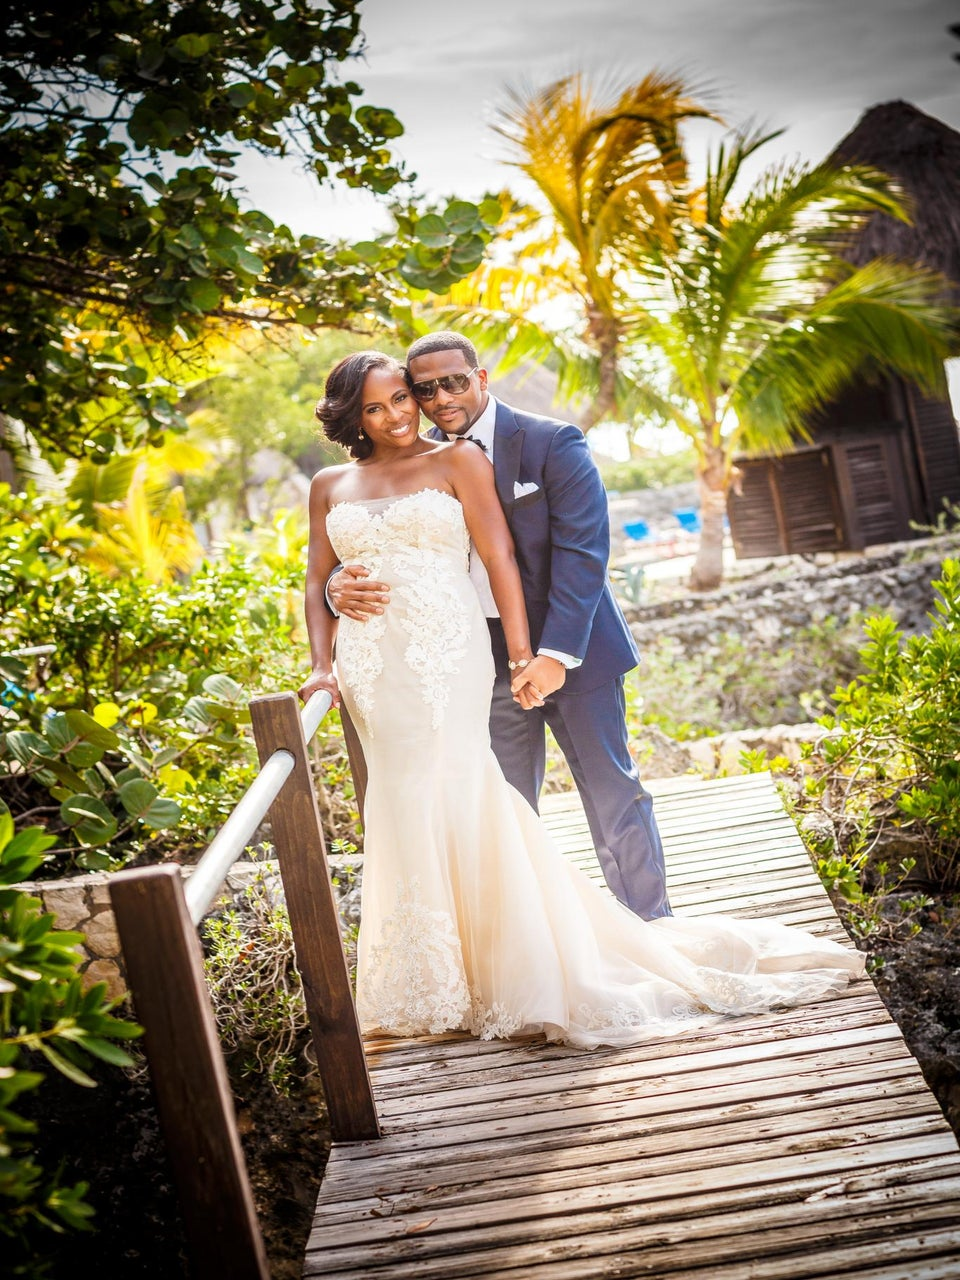 Bridal Bliss: Kamilah and Lamar's Destination Wedding